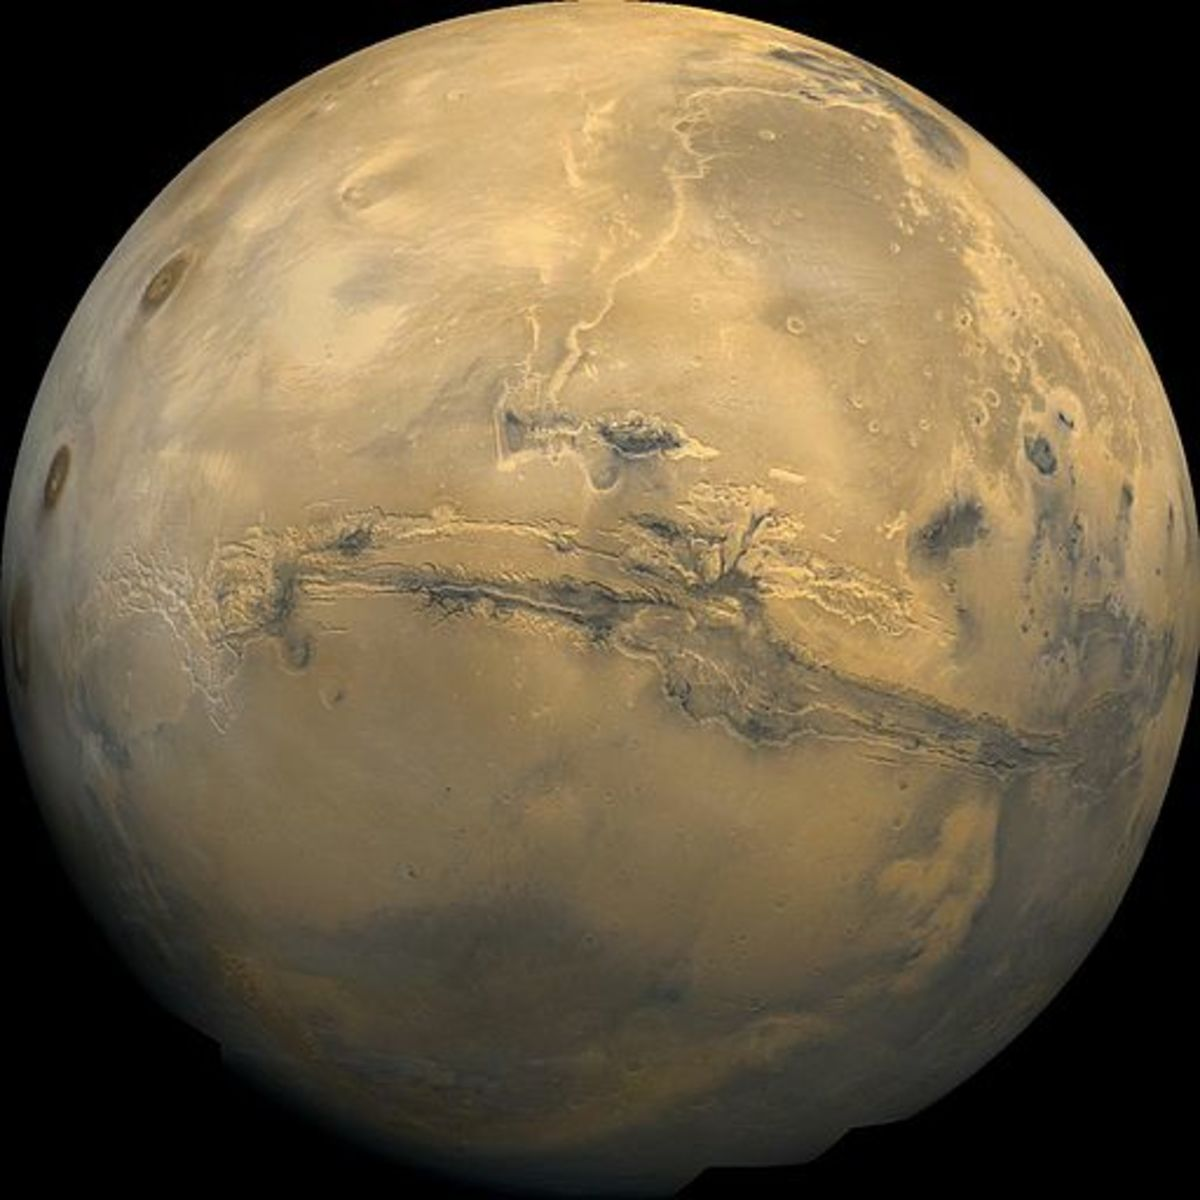 How To View The Sky, Mars and Ocean on Google Earth